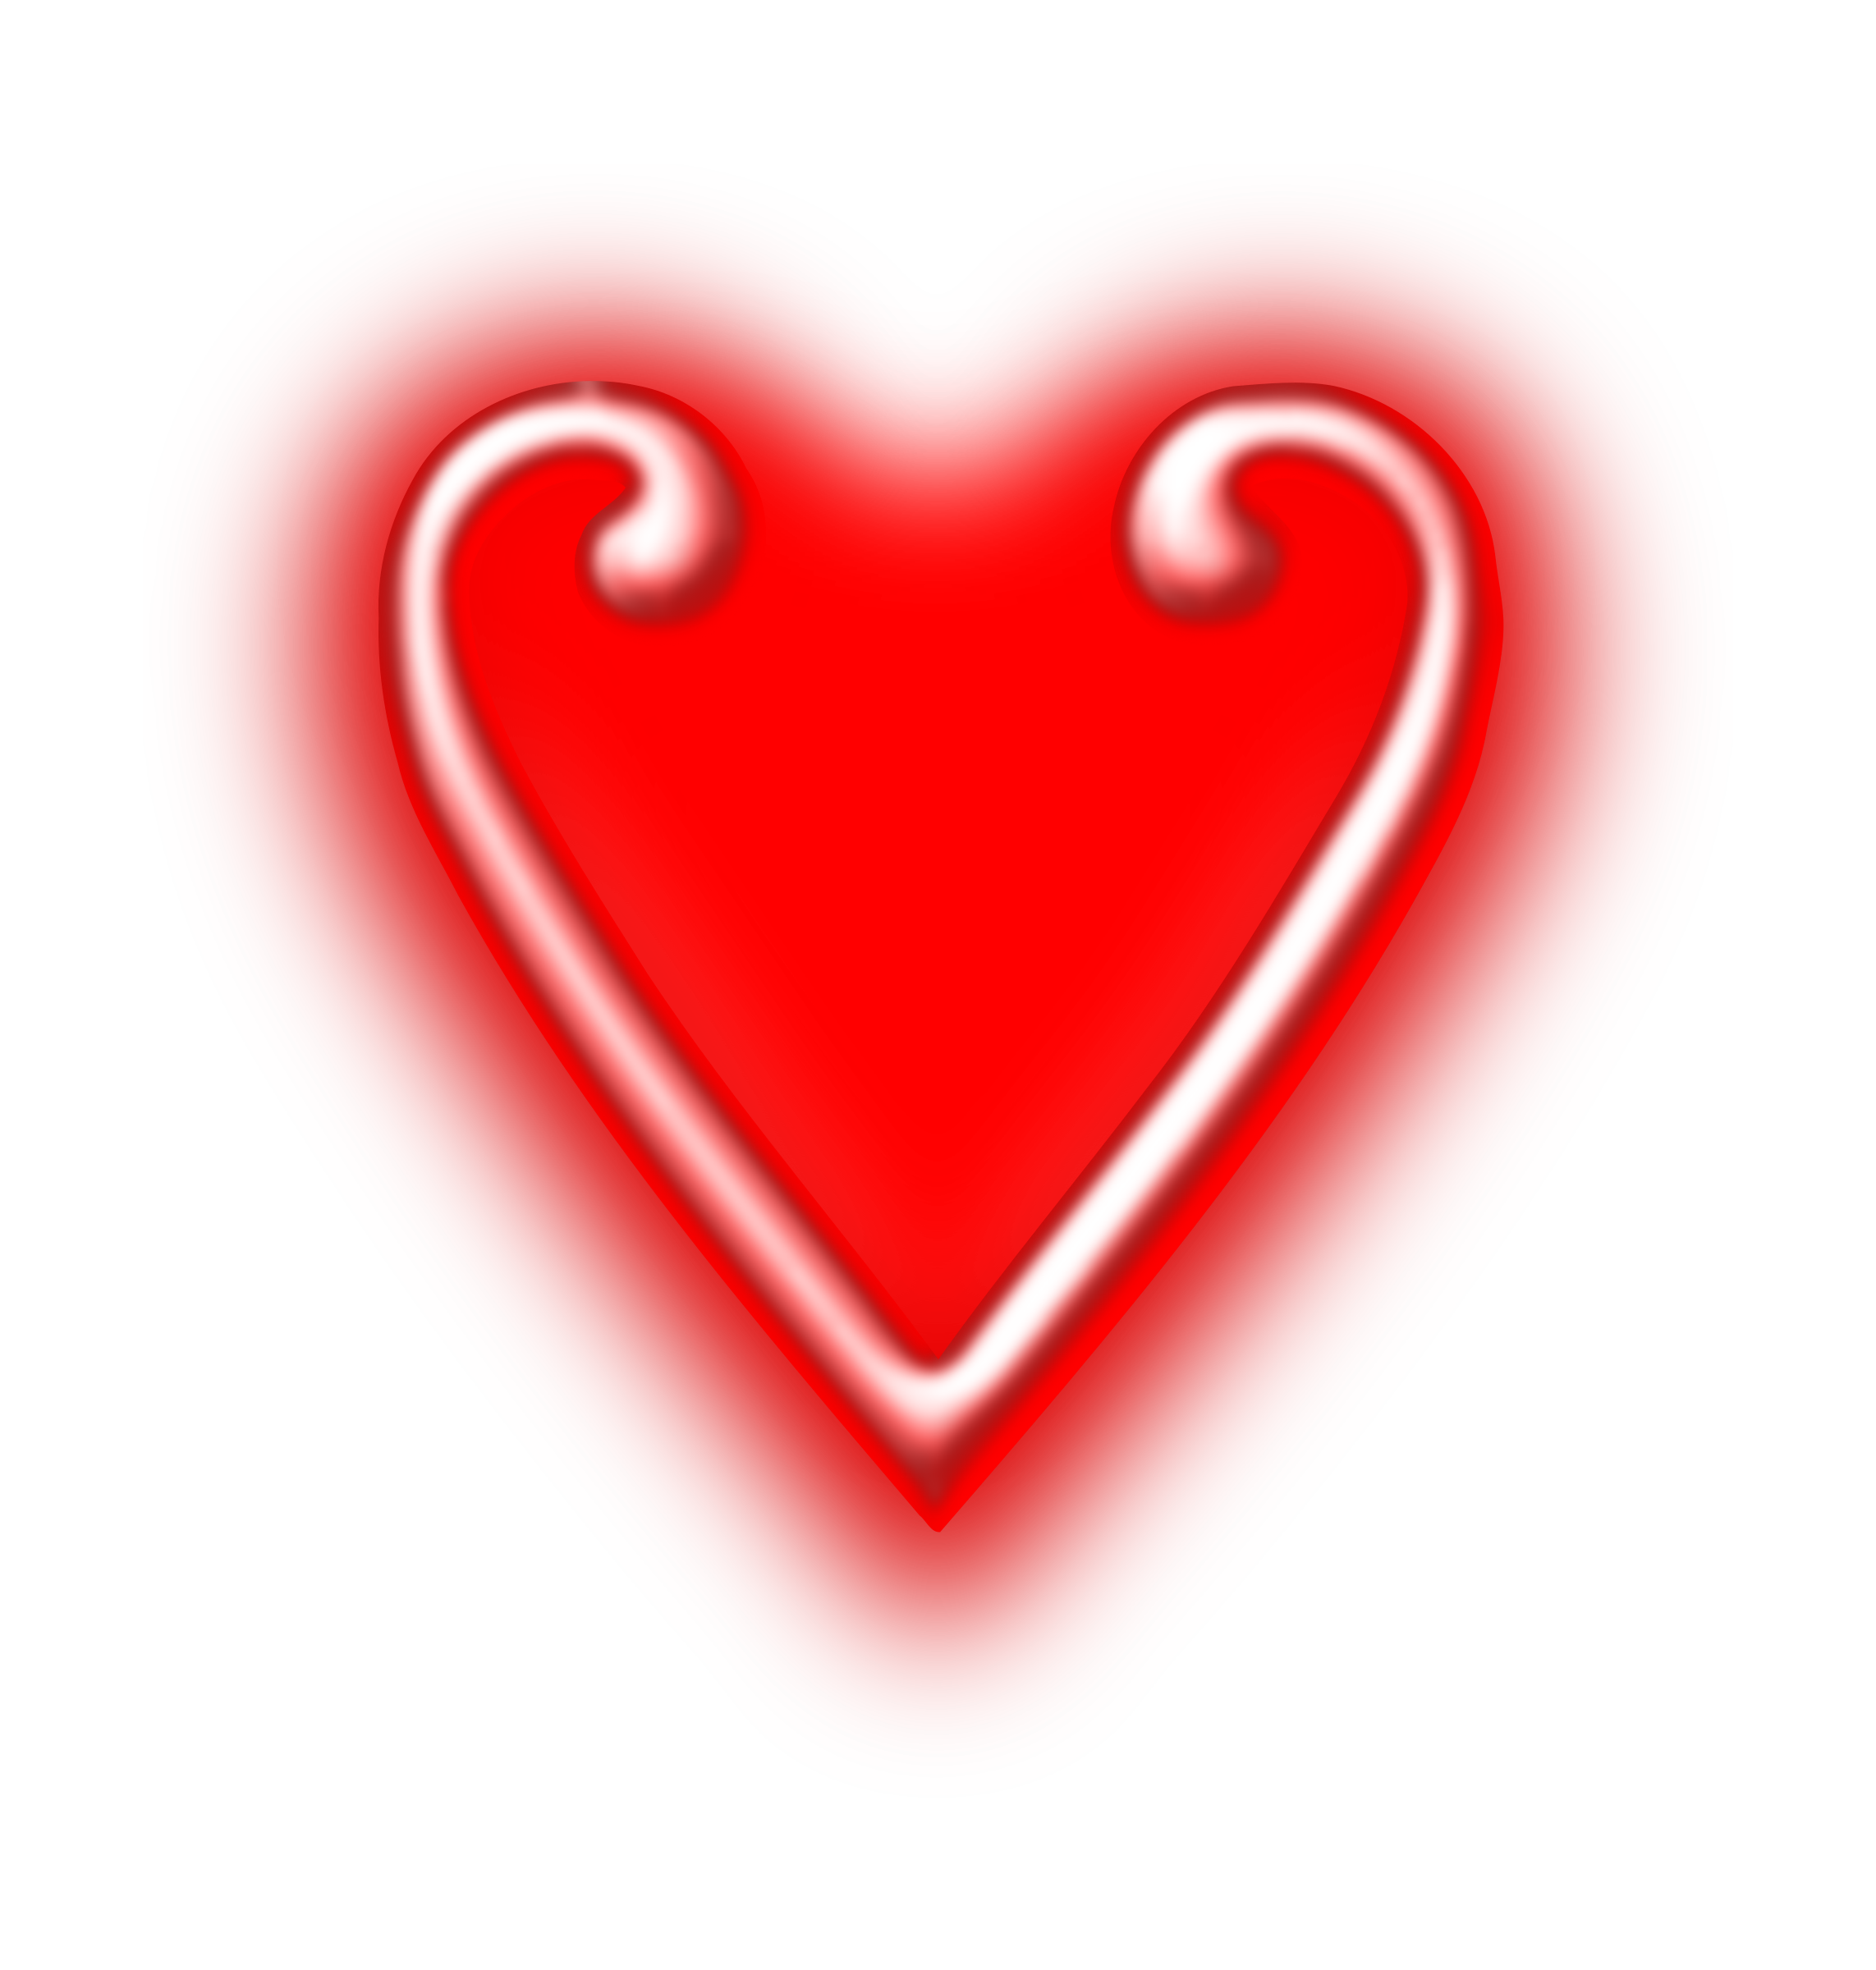 Stylised heart 2 by Firkin